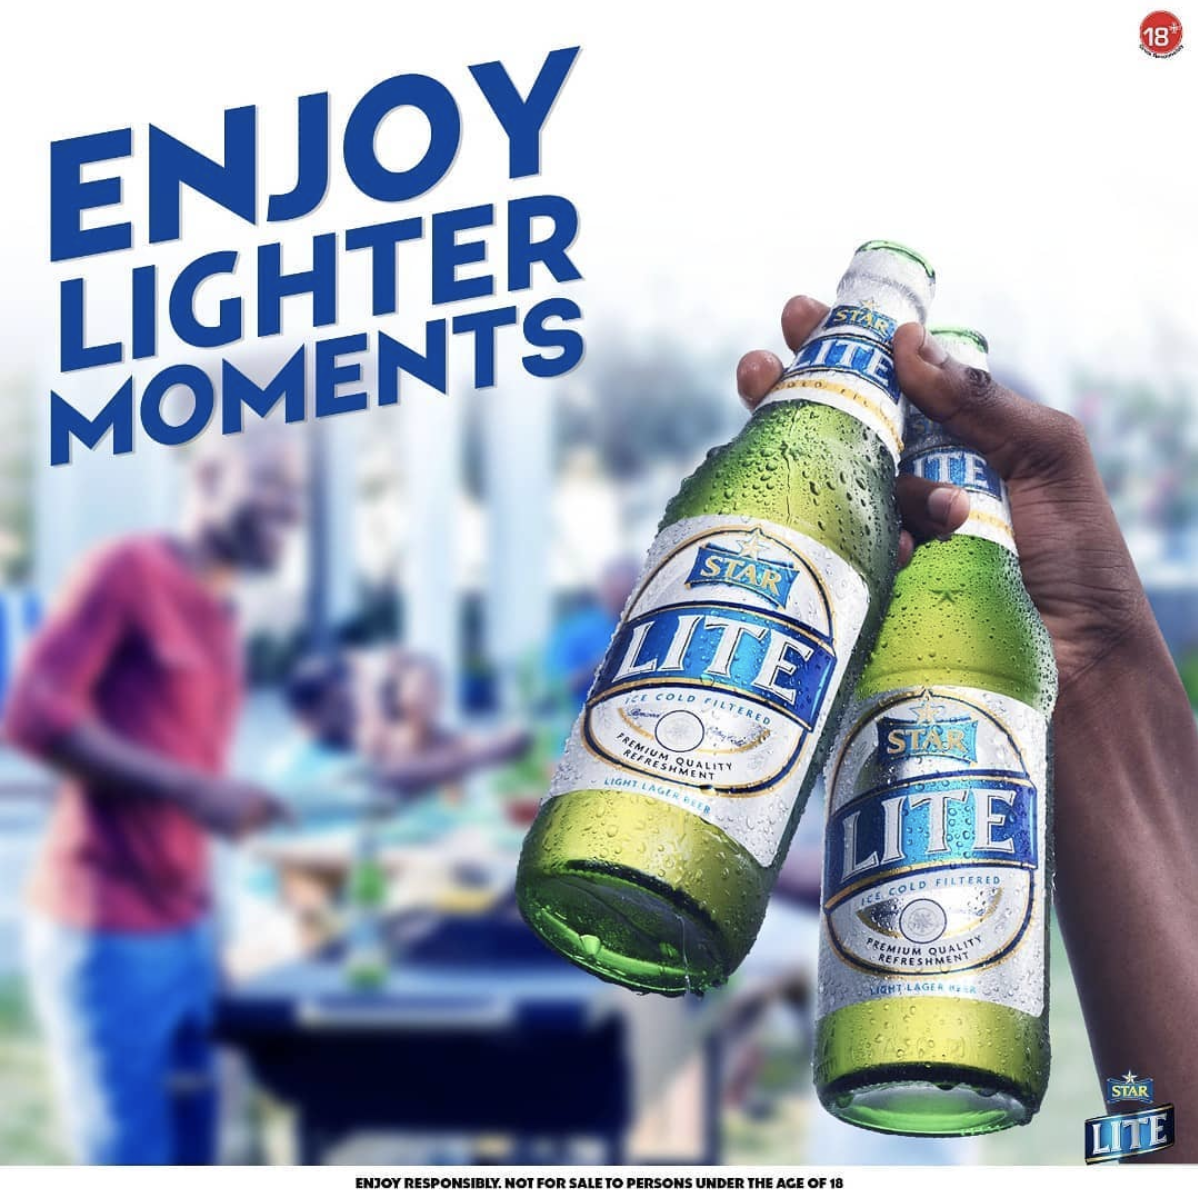 Here's How Star Lite Unveiled Its New 45cl Bottle - Brand Spur